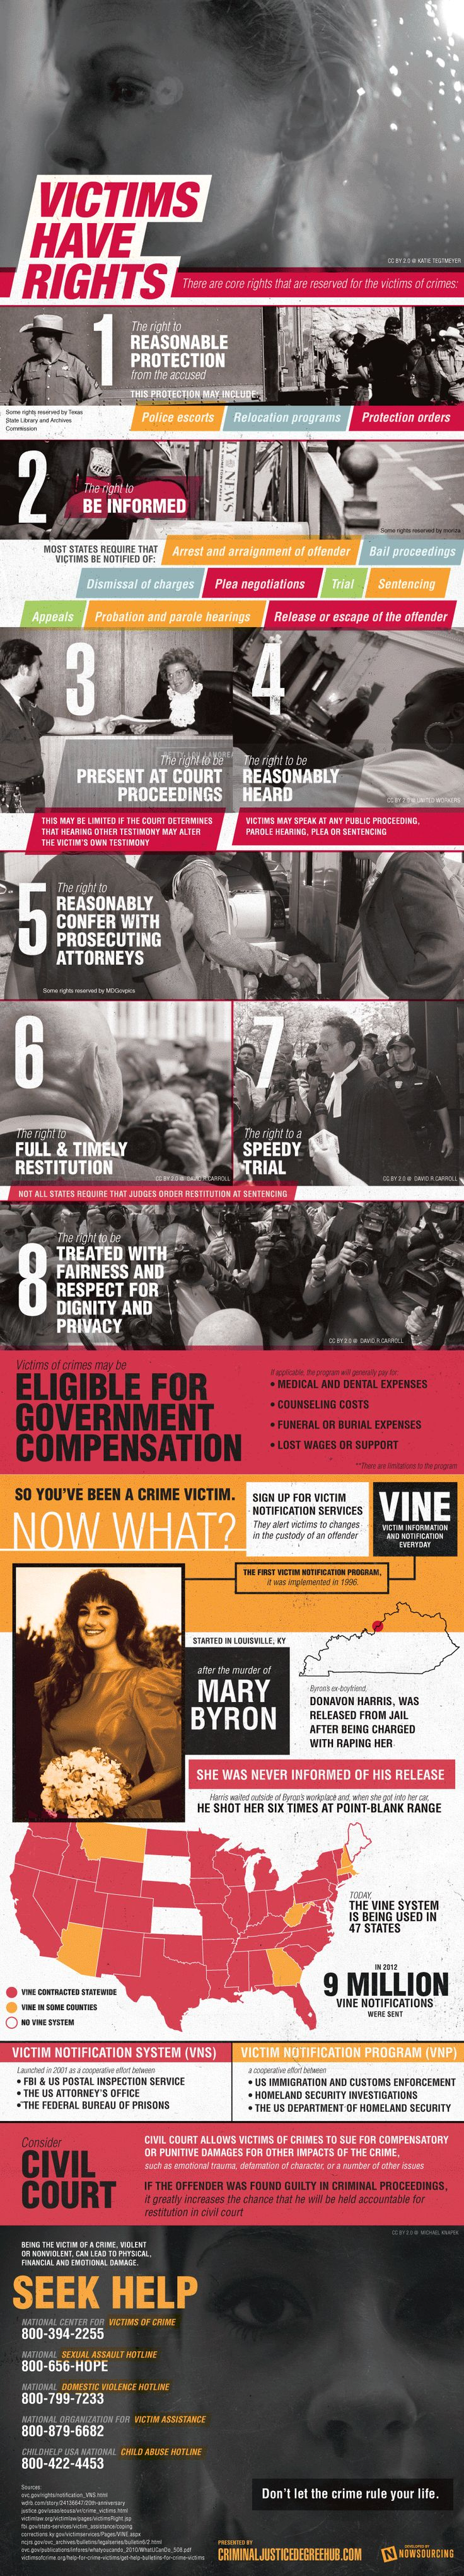 So Important Victim Rights Infographic